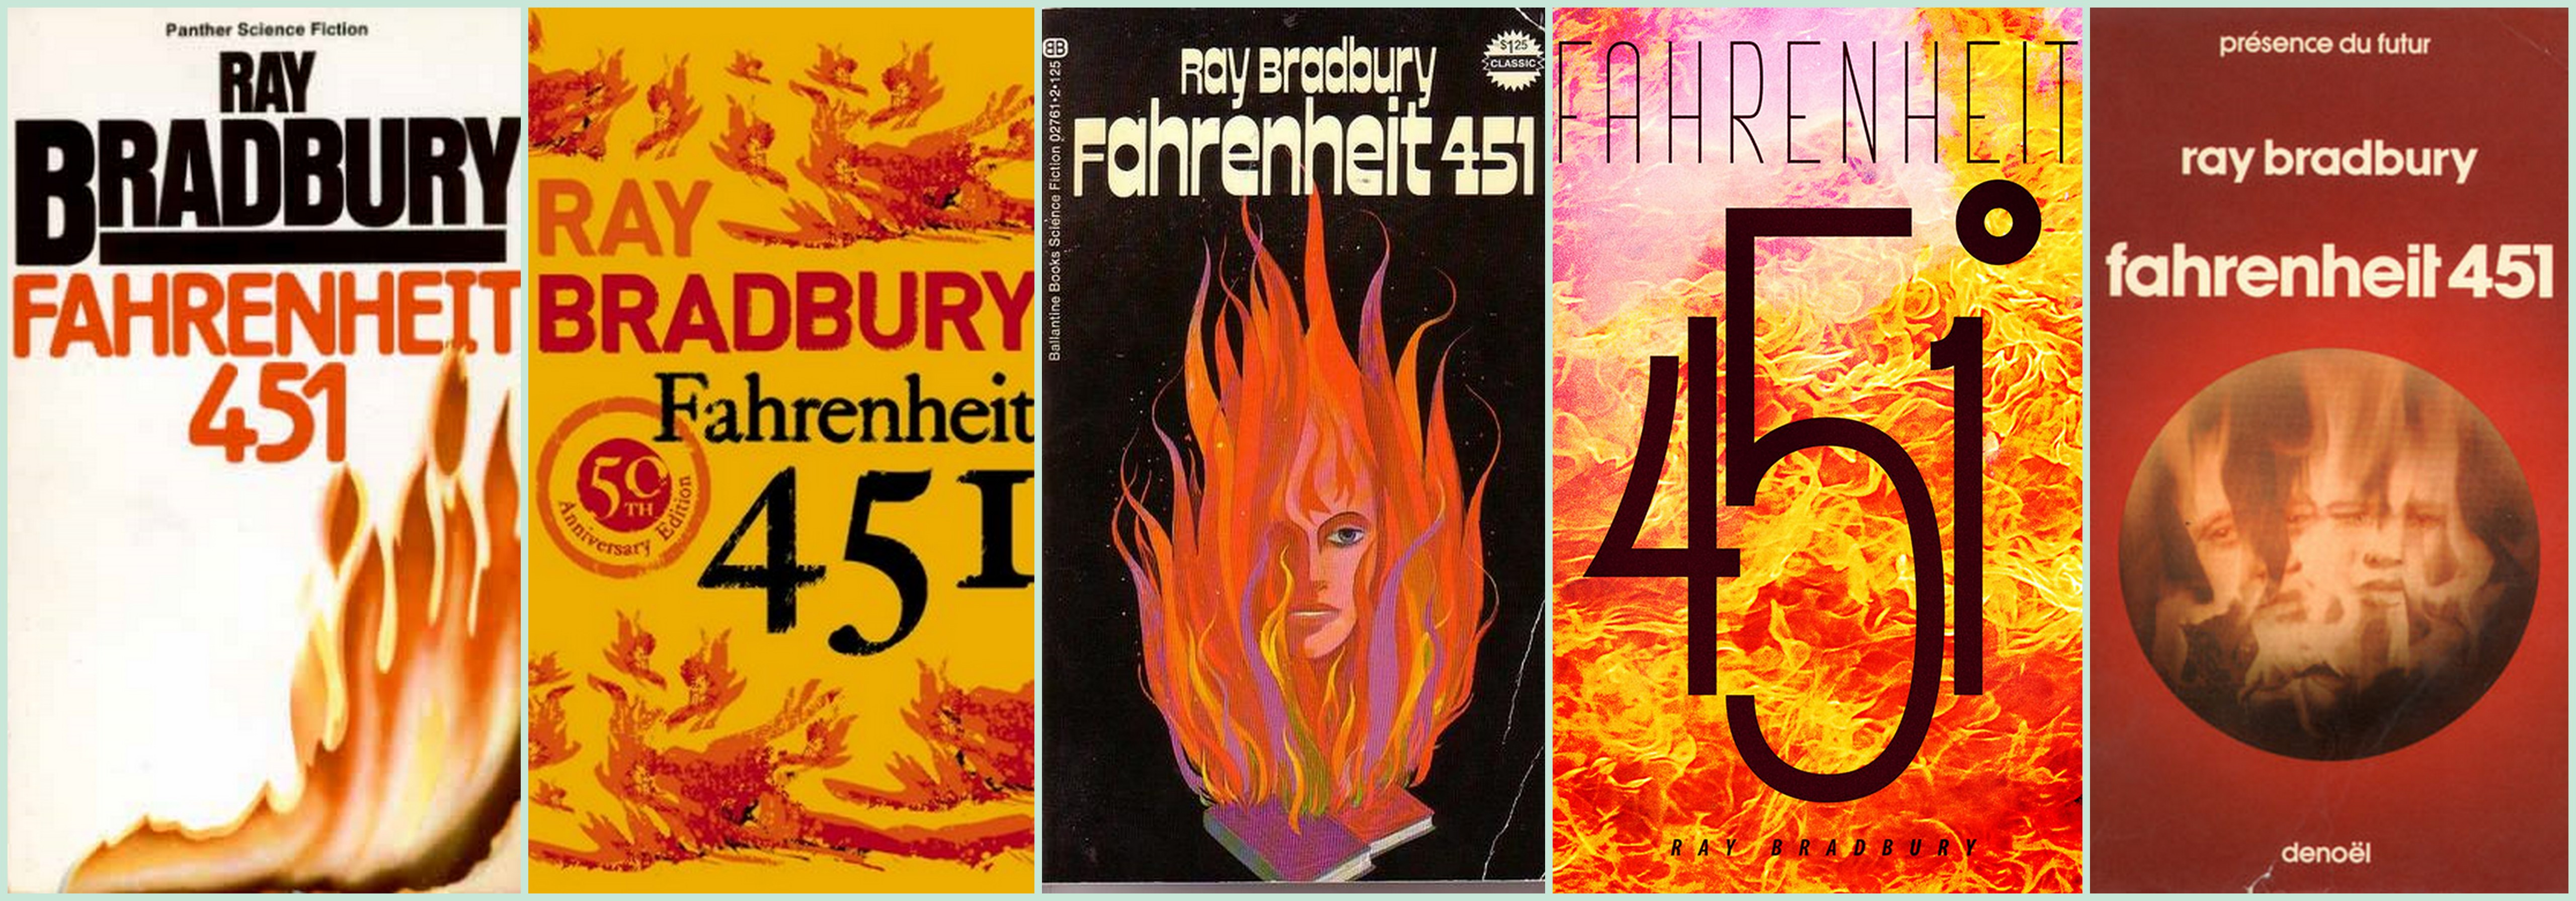 allusions to events in american history in ray bradburys fahrenheit 451 Allusions in fahrenheit 451 by: ray bradbury only civil war of american history more than 600,000 died in the war north's victory proved that democracy worked.